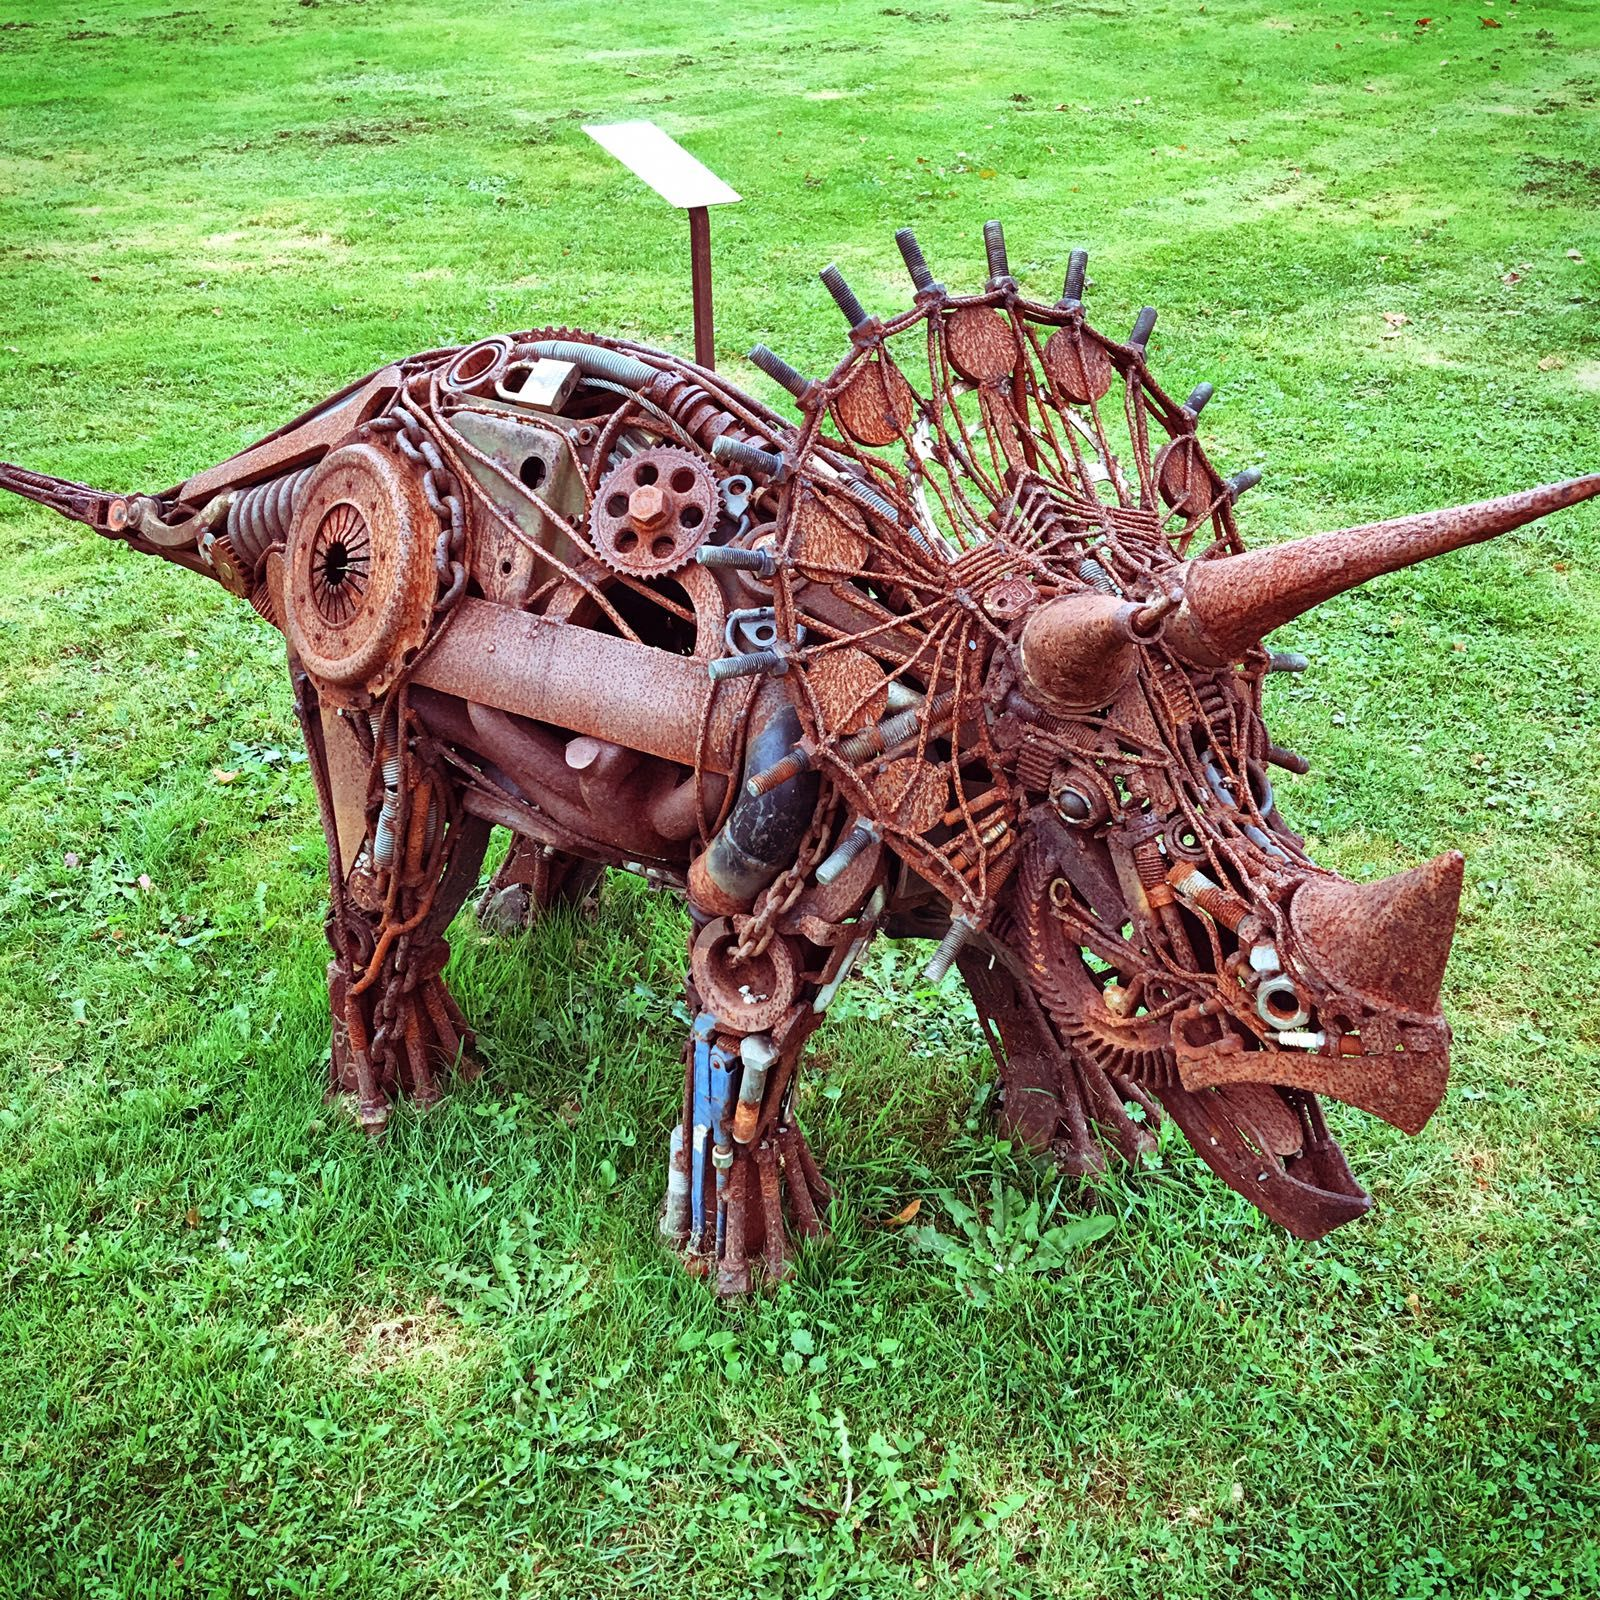 Pin by Tom Jacobs on Metal Recycle Art- Dinosaurs | Metal ...